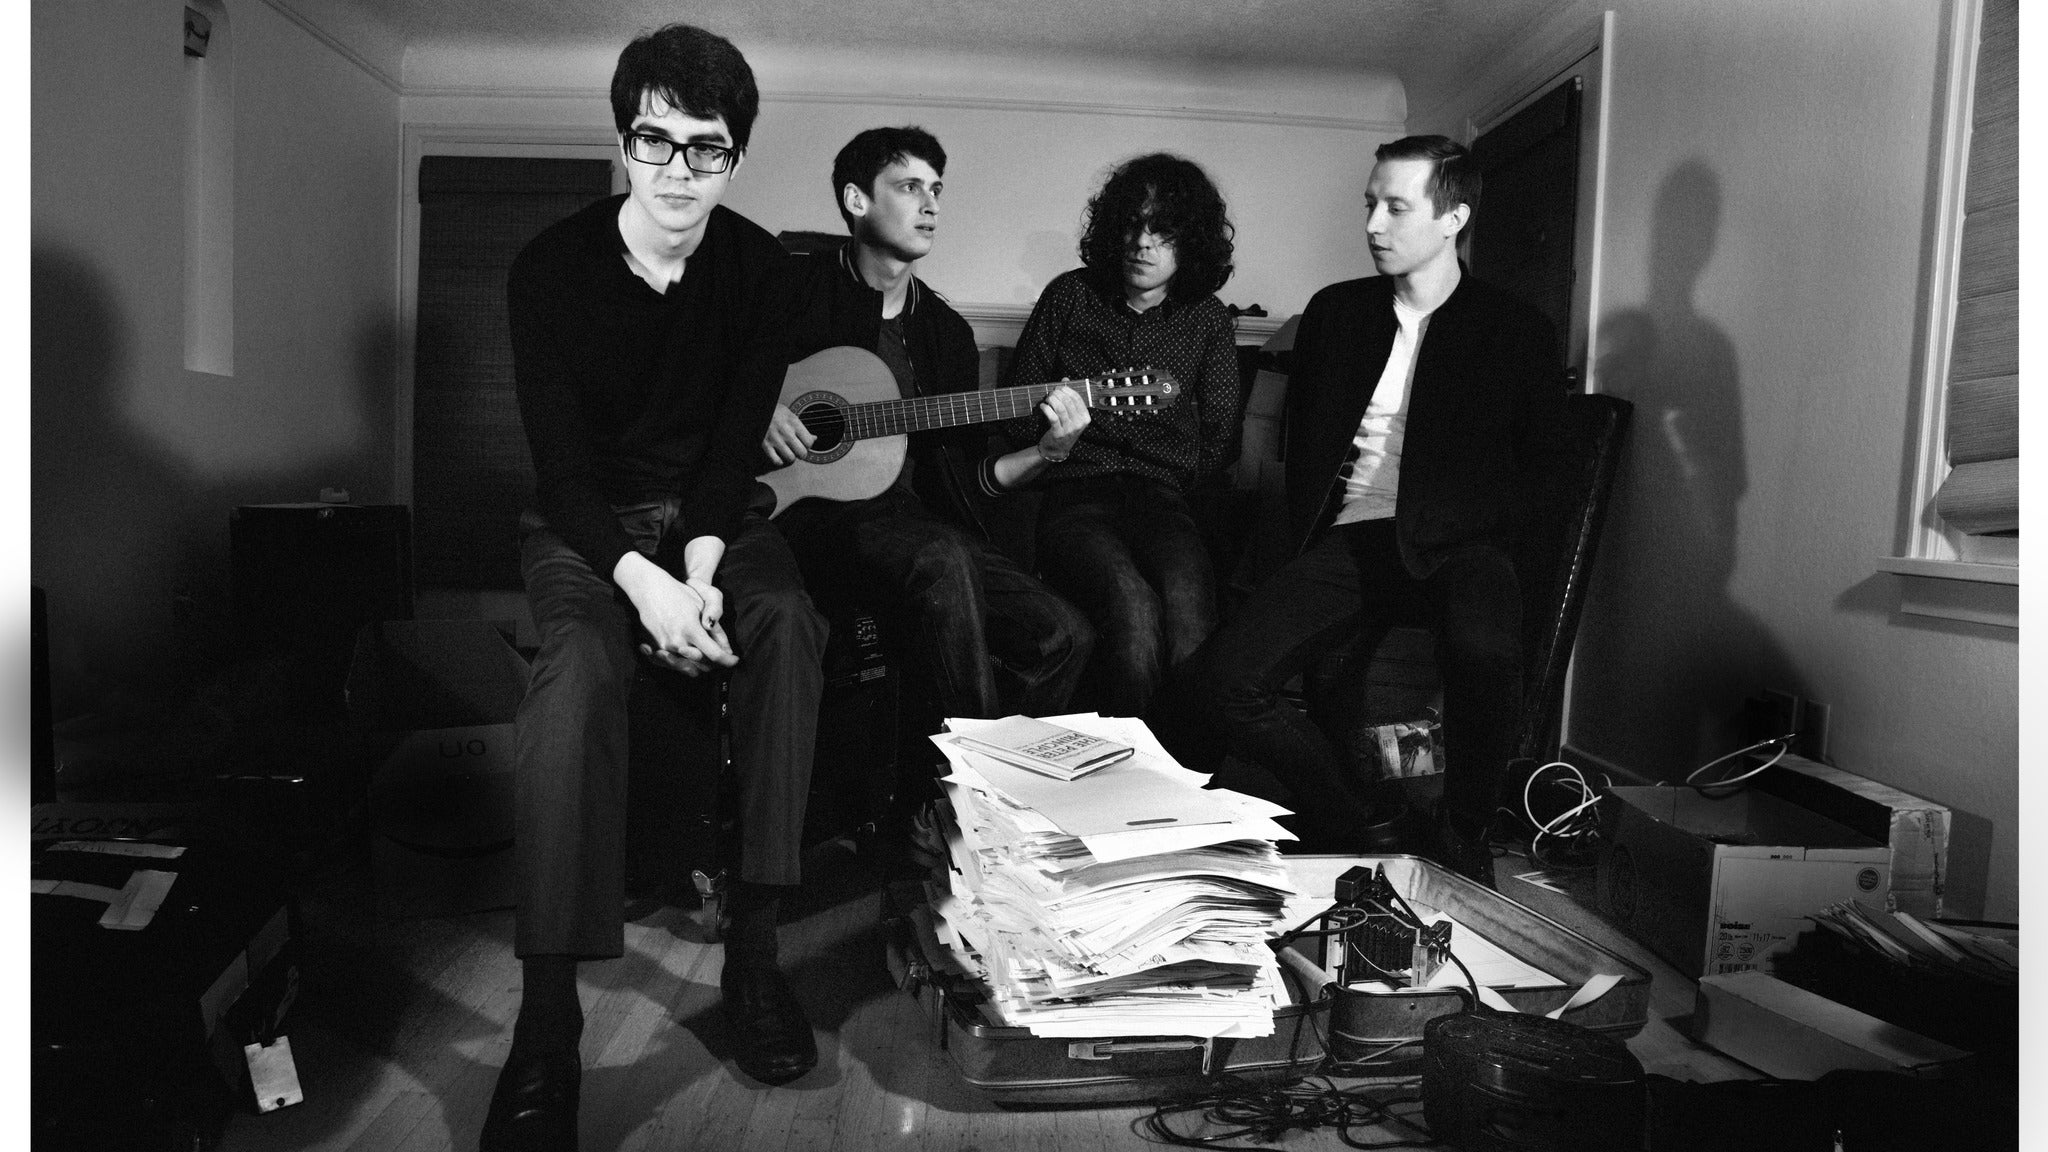 Car Seat Headrest at 191 Toole